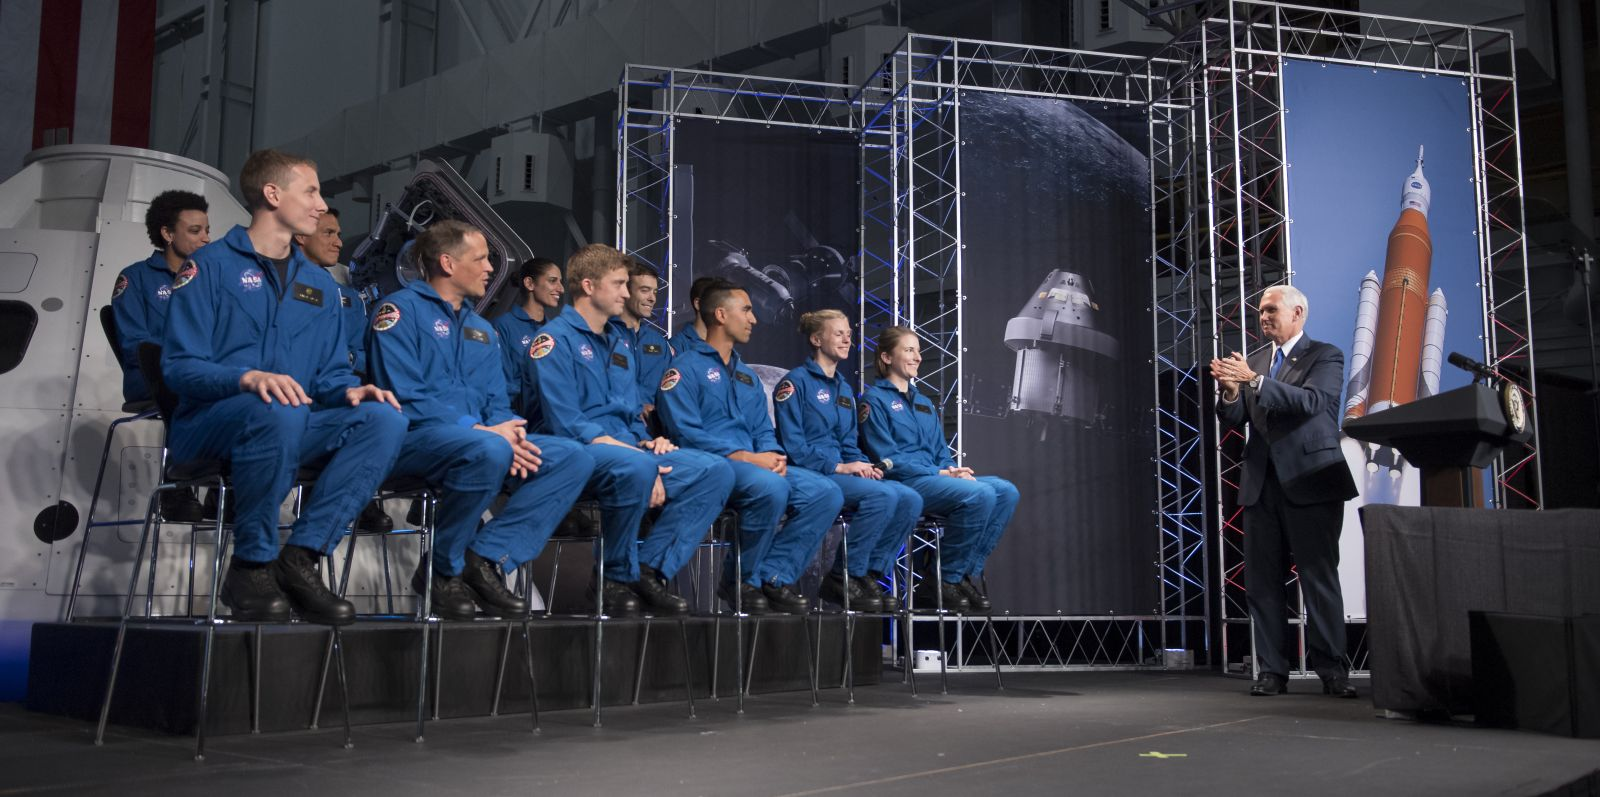 Twelve astronaut candidates were selected - out of 18,300 applicants. Photo Credit: Bill Ingalls / NASA